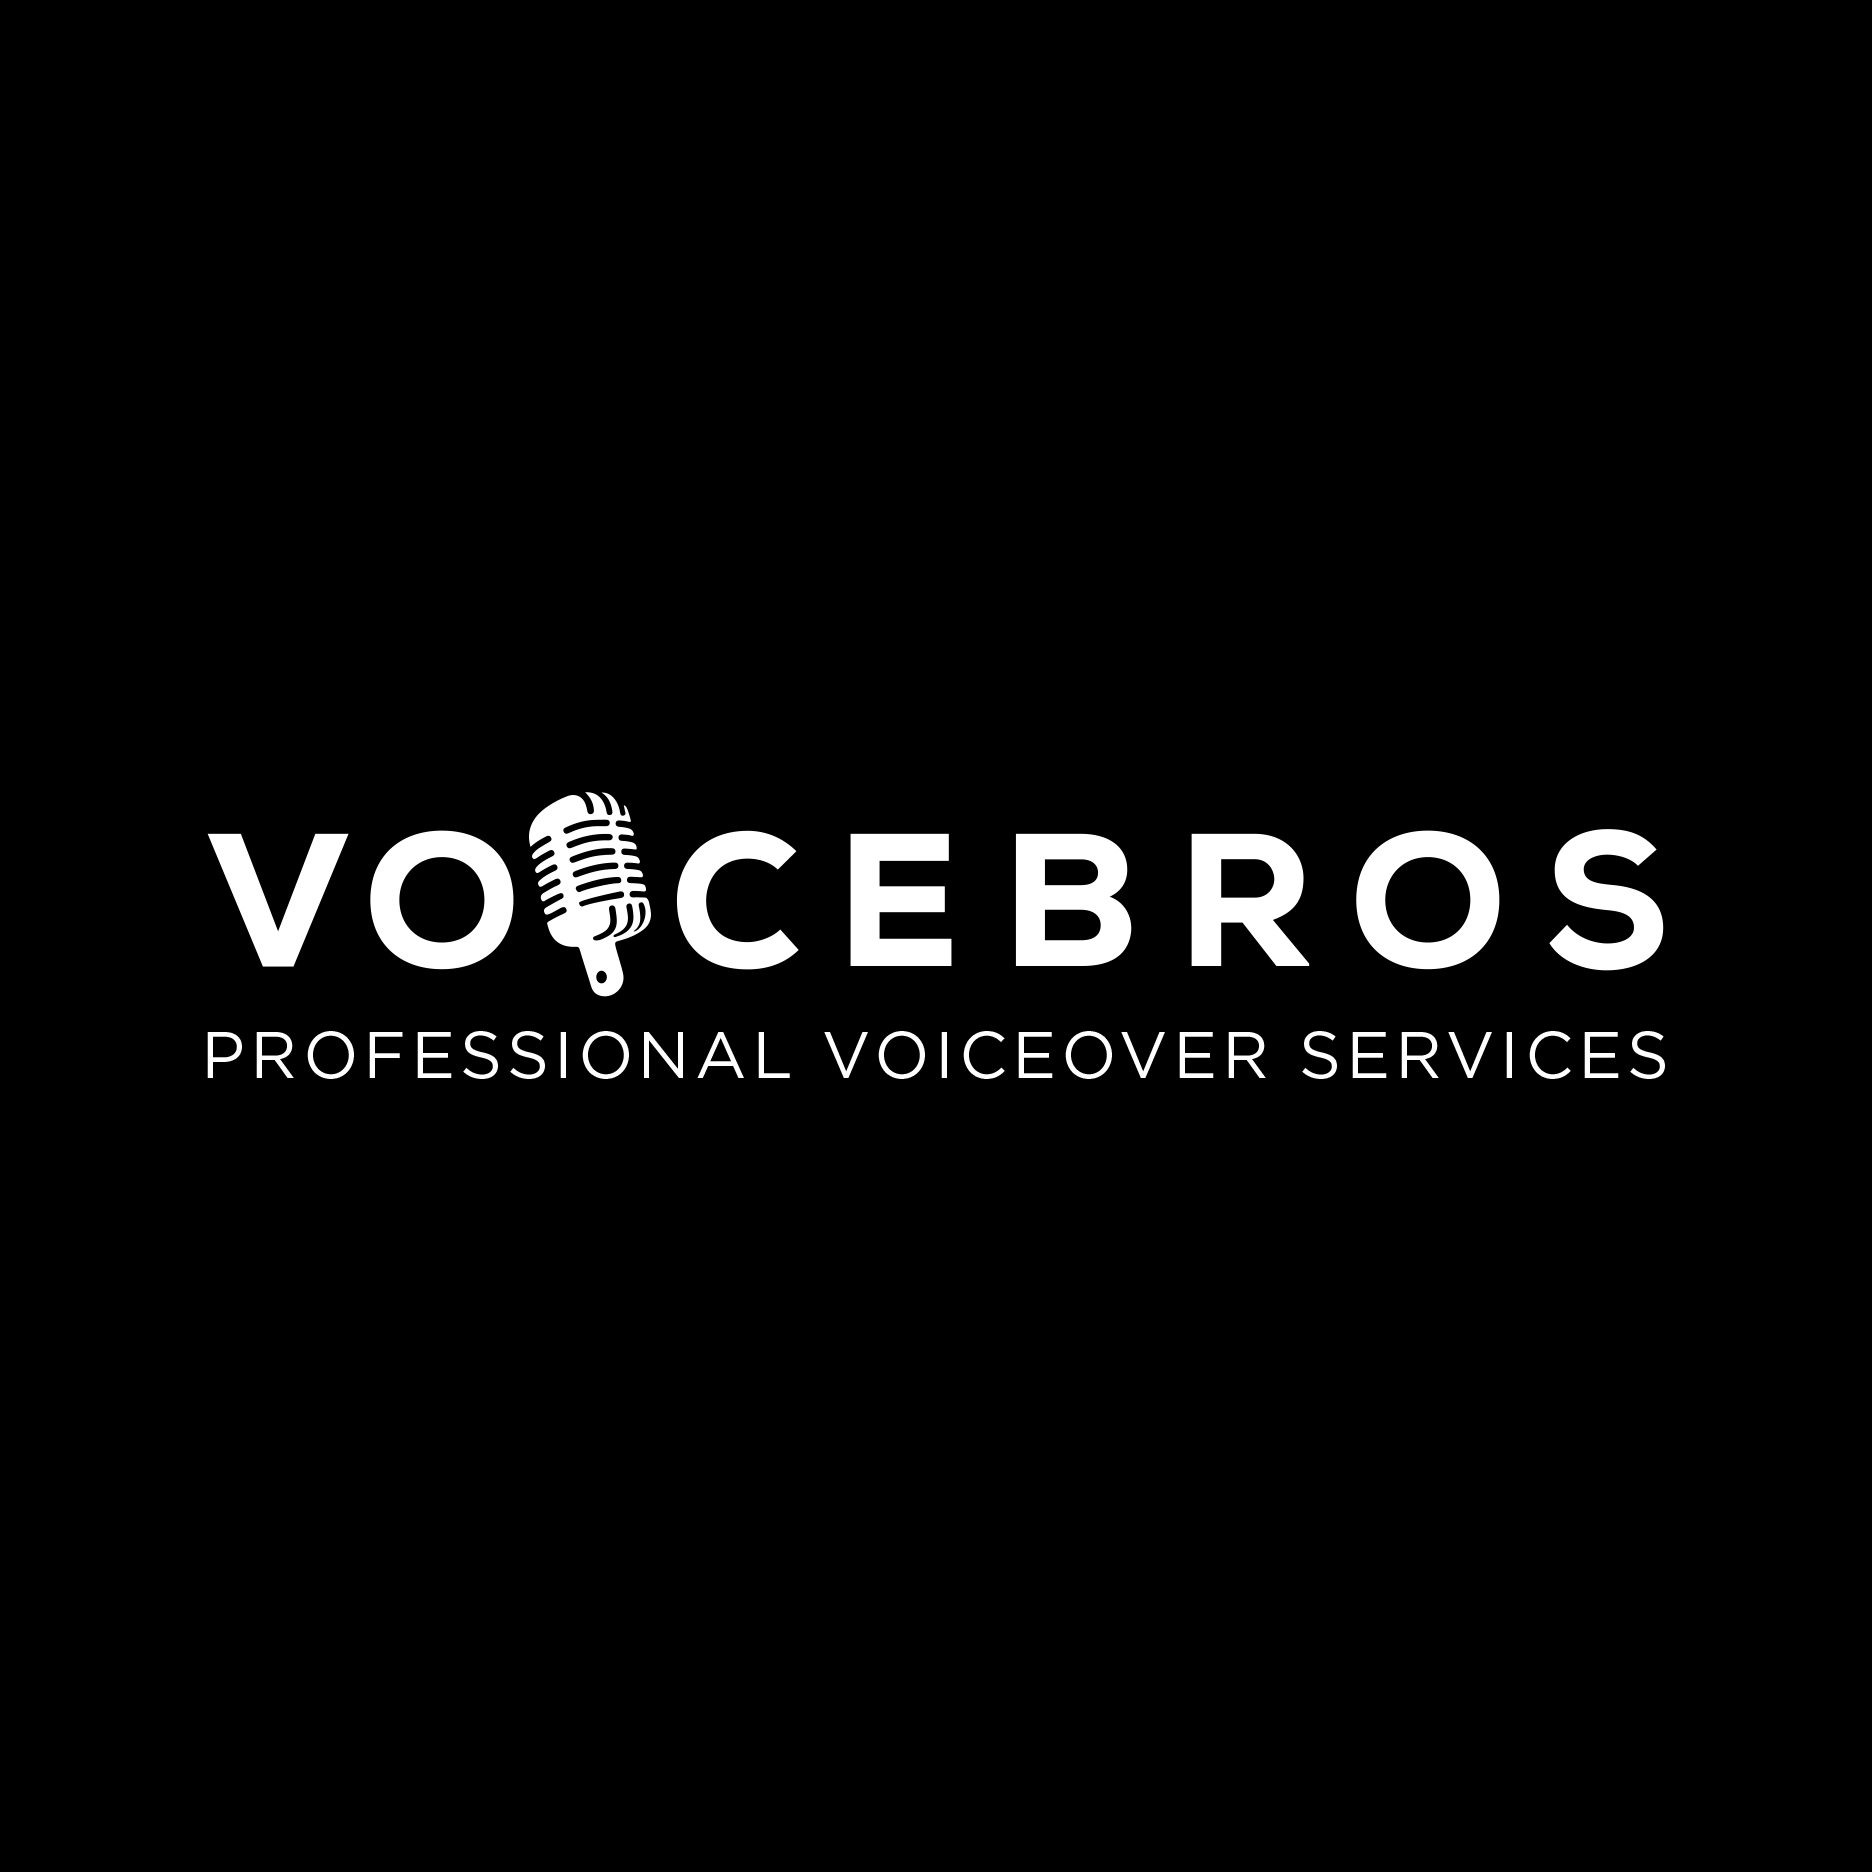 Kenta S. is a voice over actor